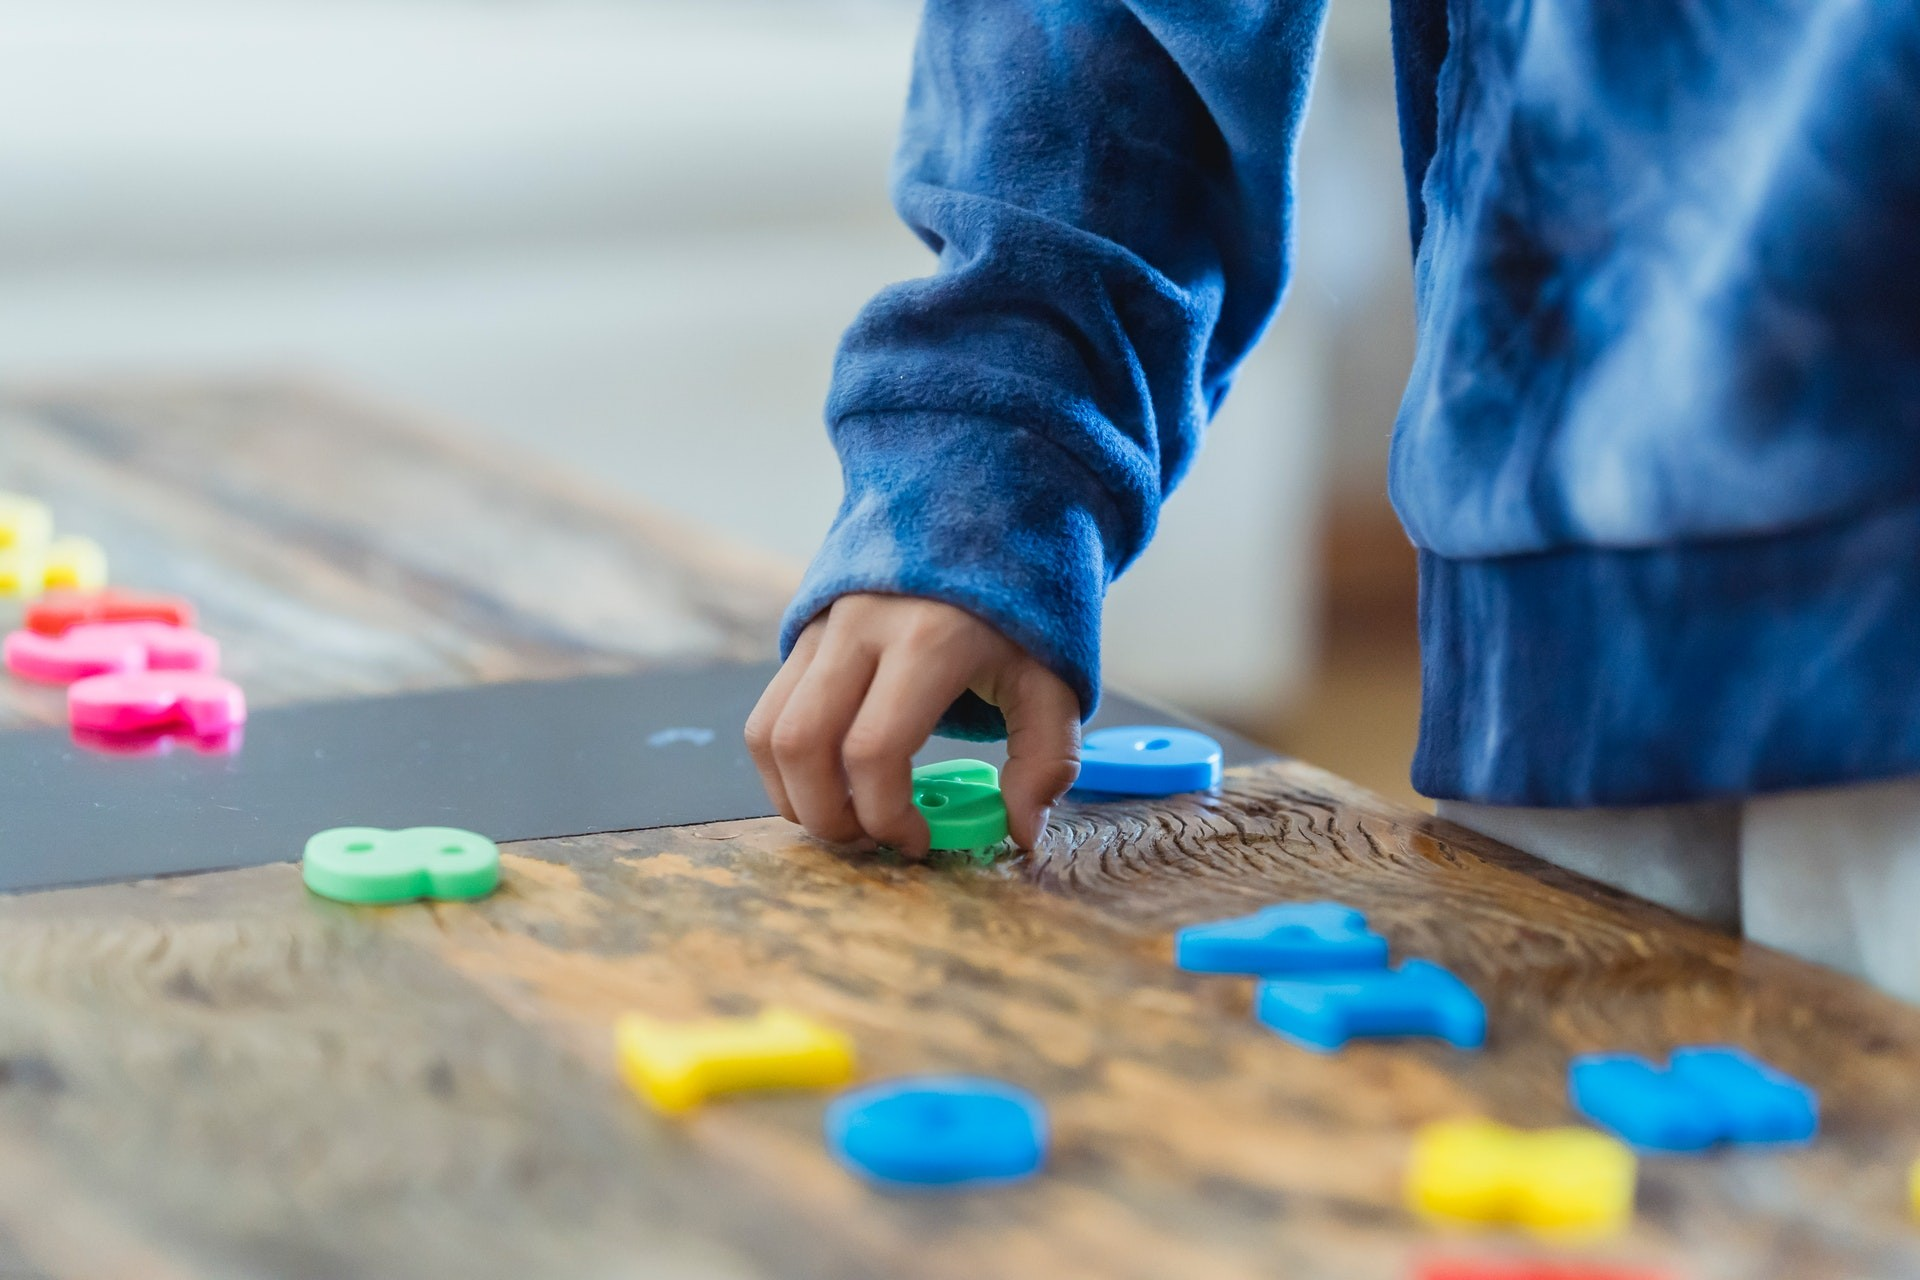 Student uses number blocks to play classroom math games